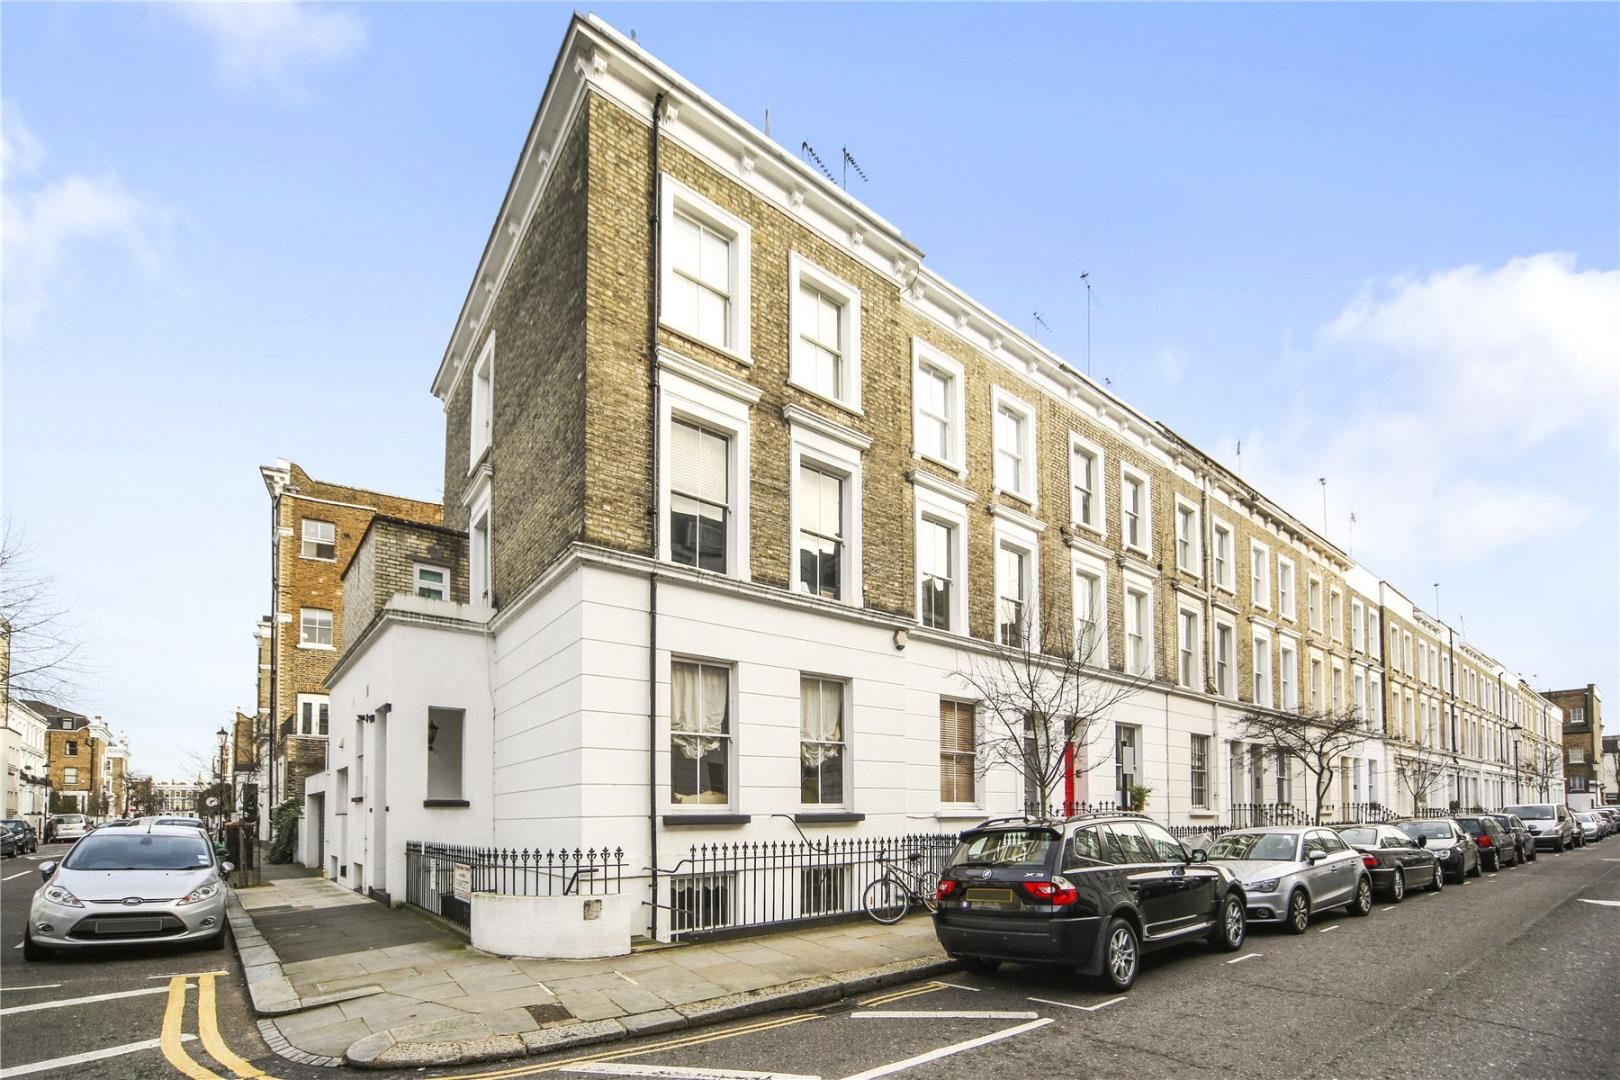 Commercial Property For Rent In Chelsea